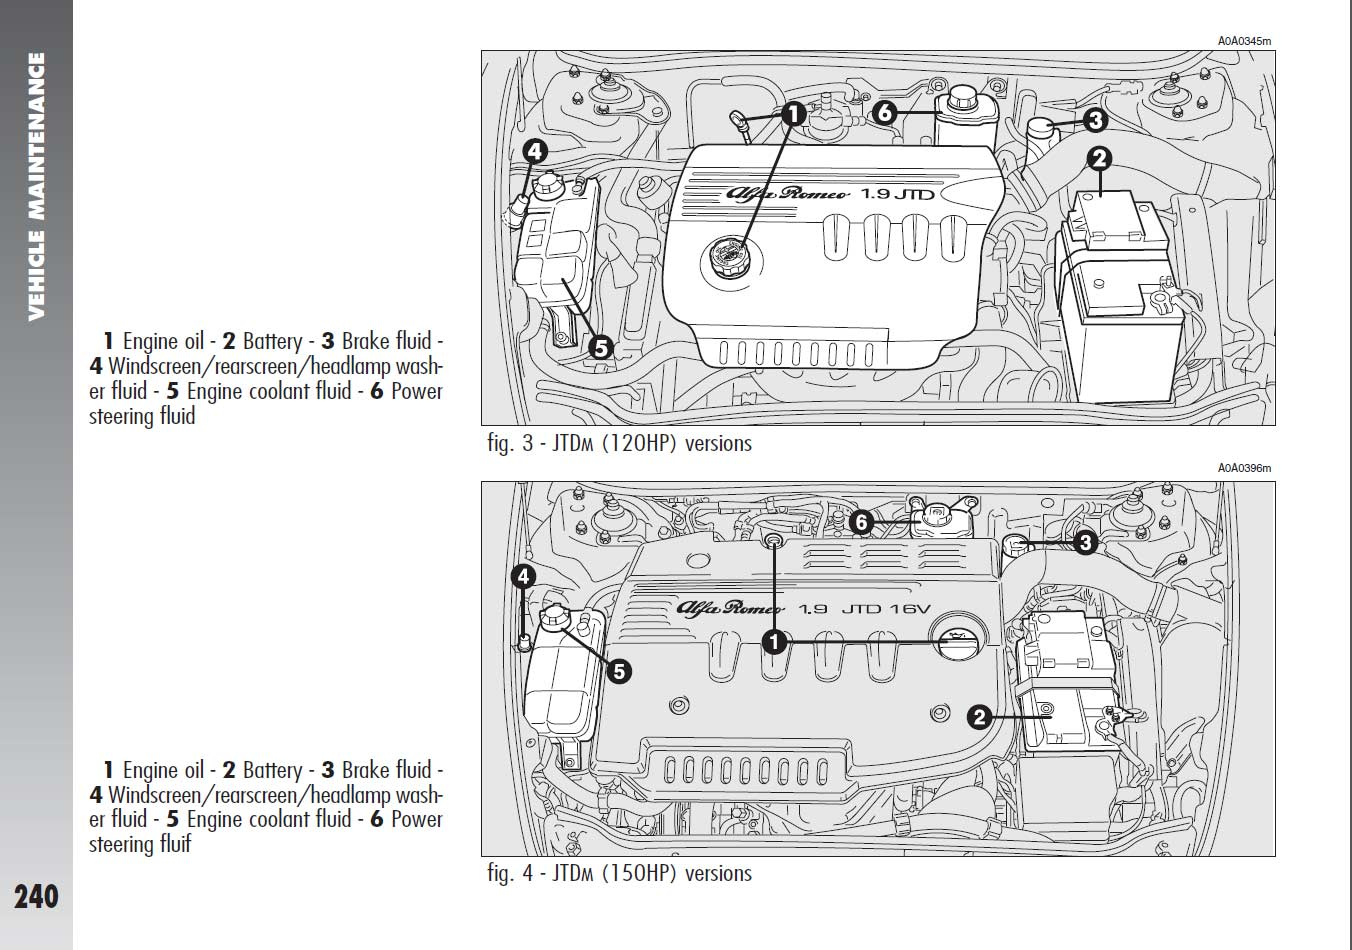 Alfa Romeo Engine Cooling Diagram : Alfa romeo wiring diagram body